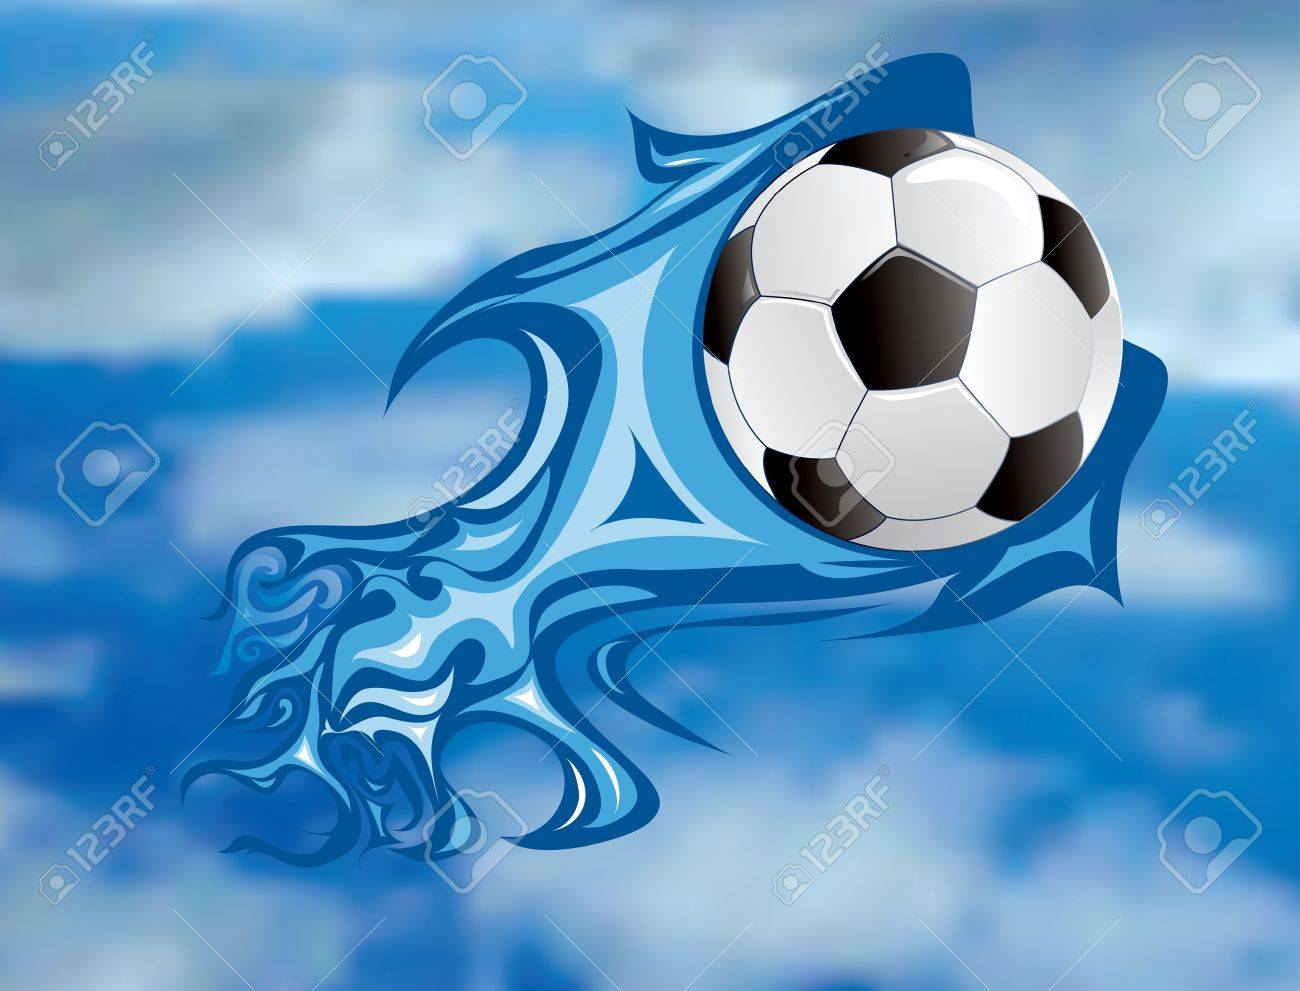 vector illustration of the soccer fireball in sky Stock Vector - 10825265